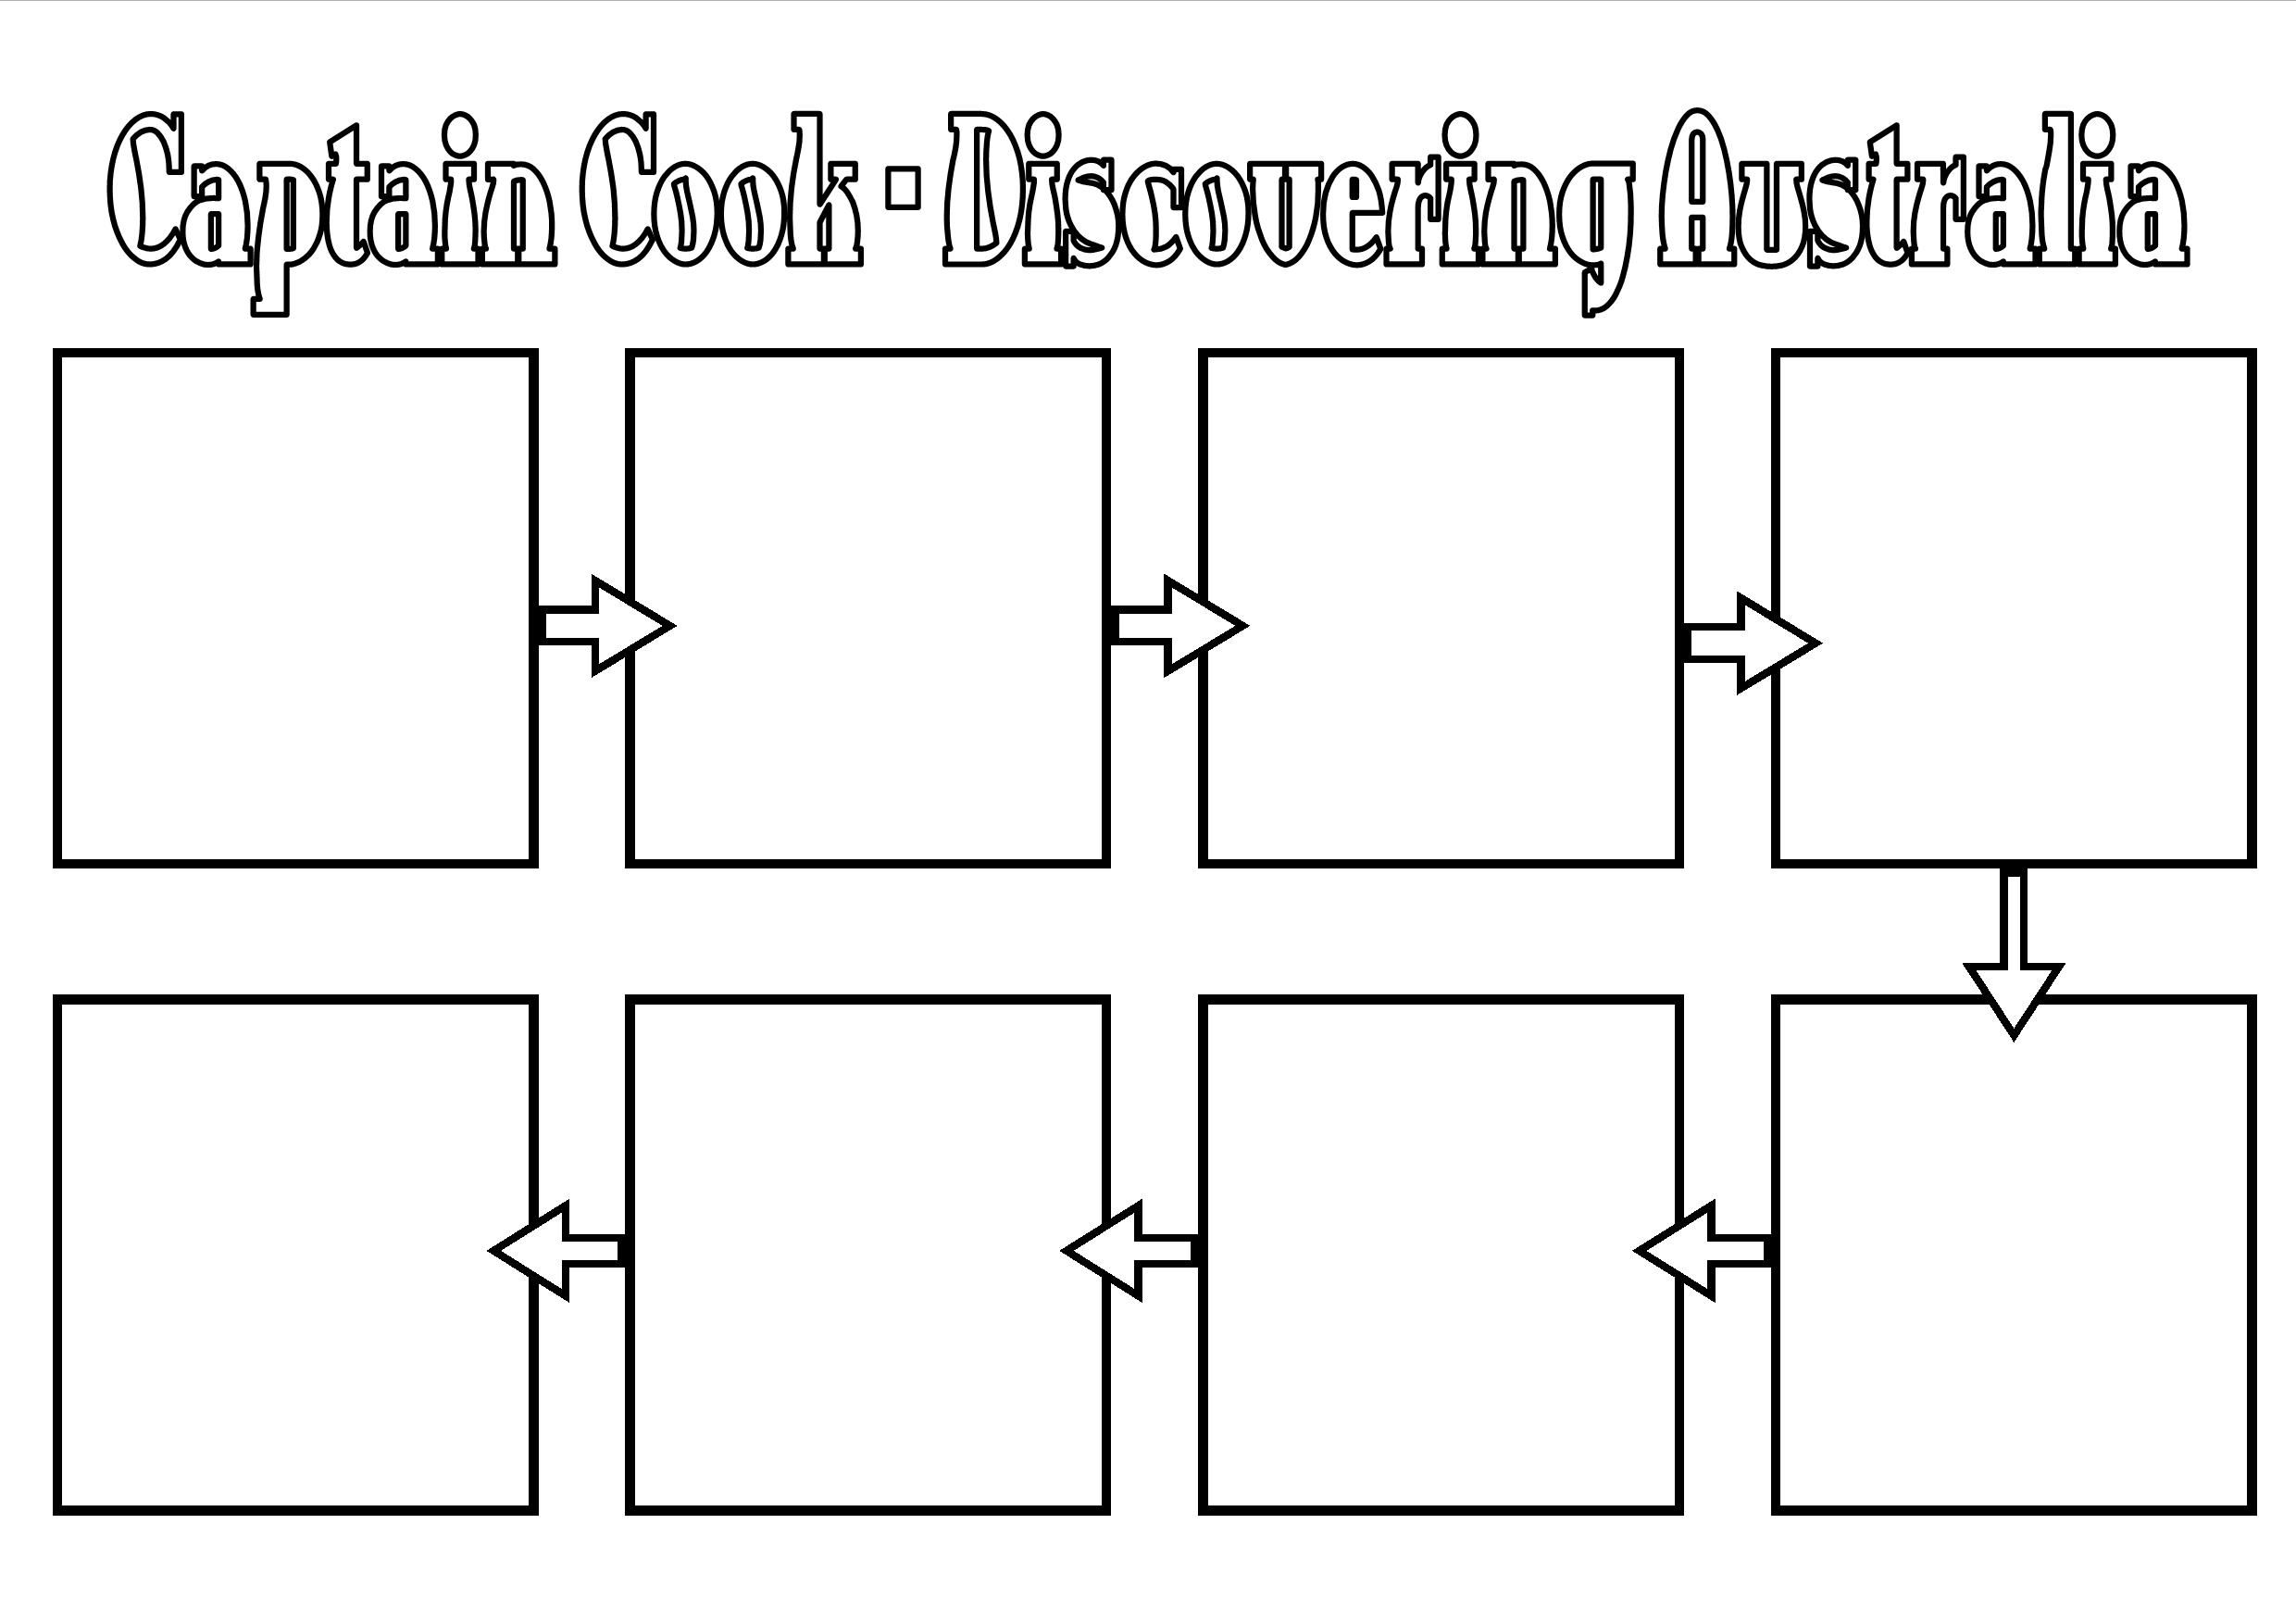 Captain Cook Journey Storyboard